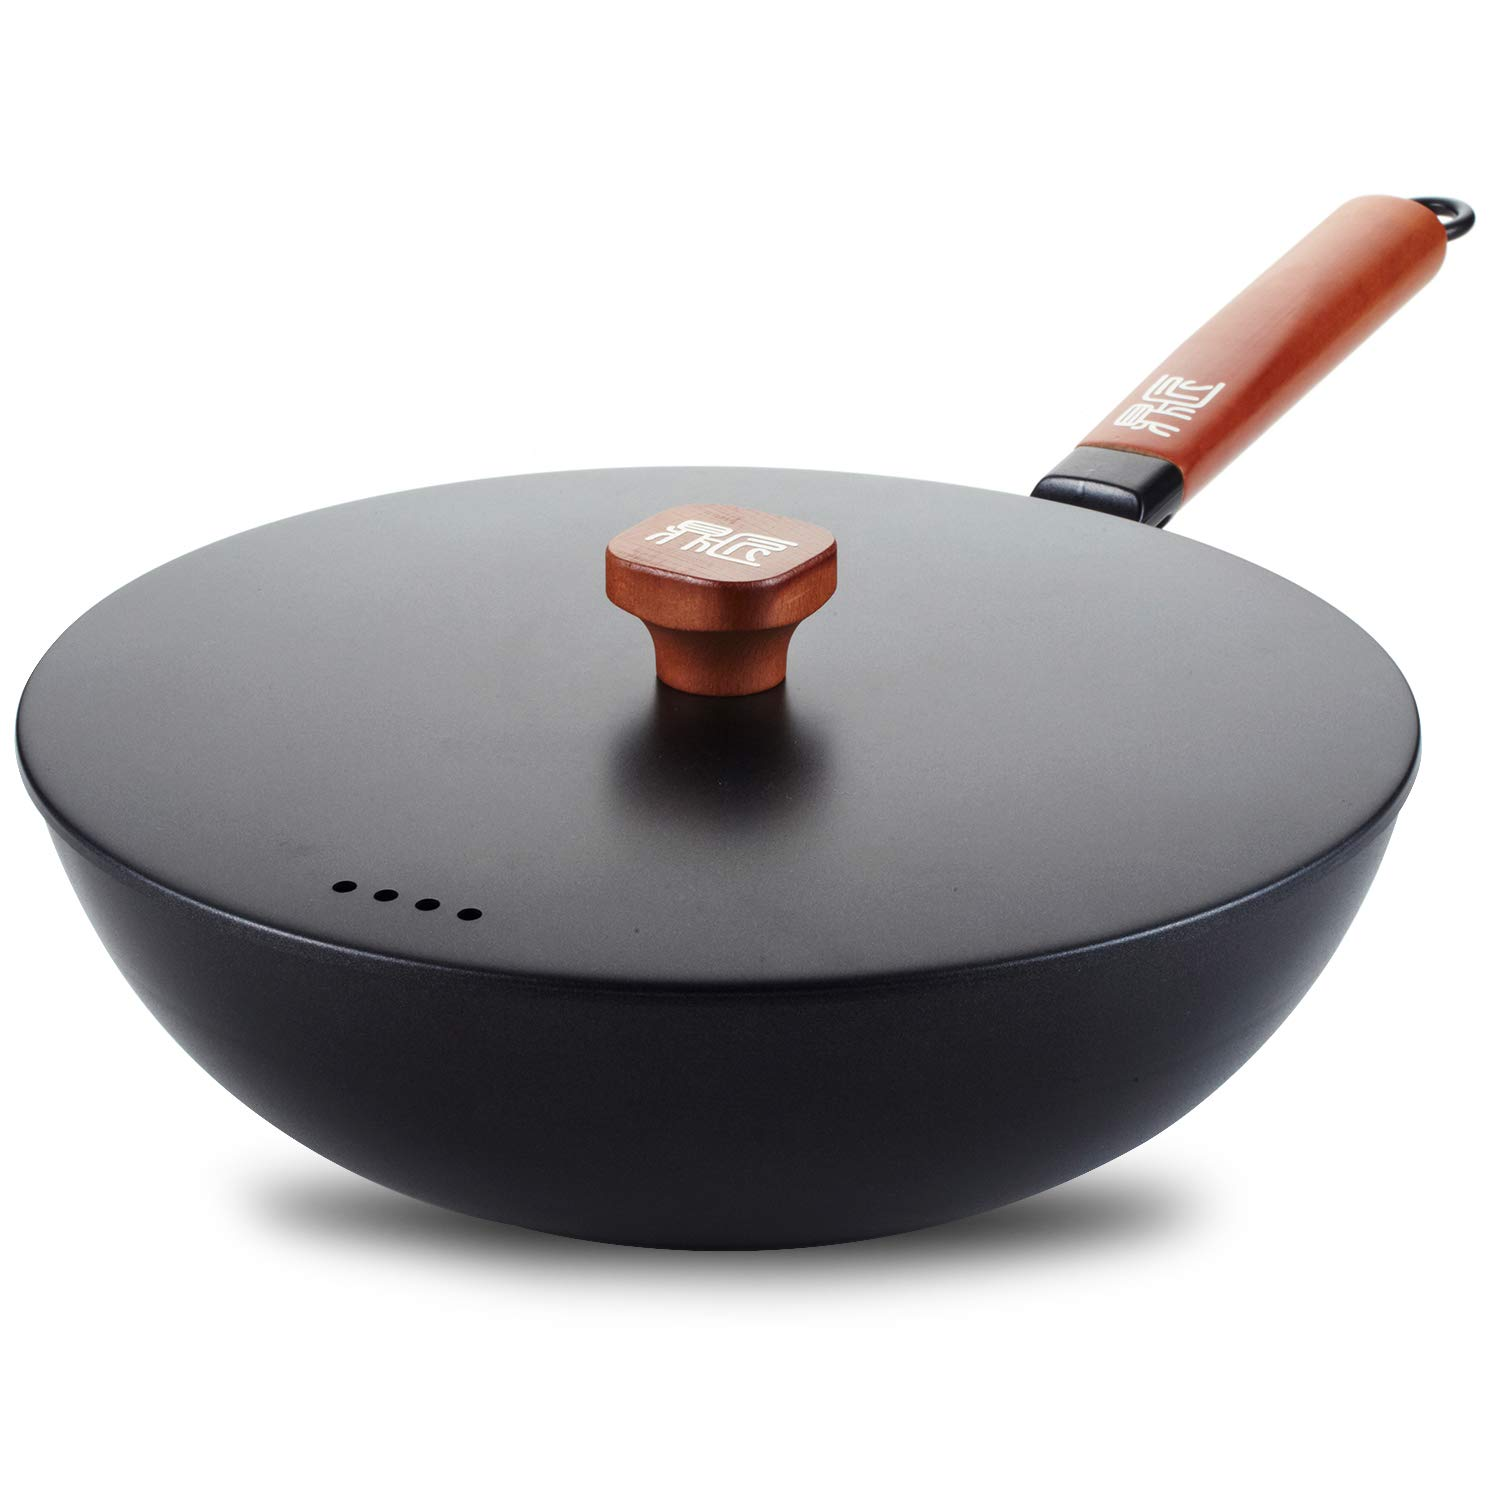 DINGJIANG Nonstick 11.8 Inch Skillet Cast Iron Wok with Lid and Rosewood handle